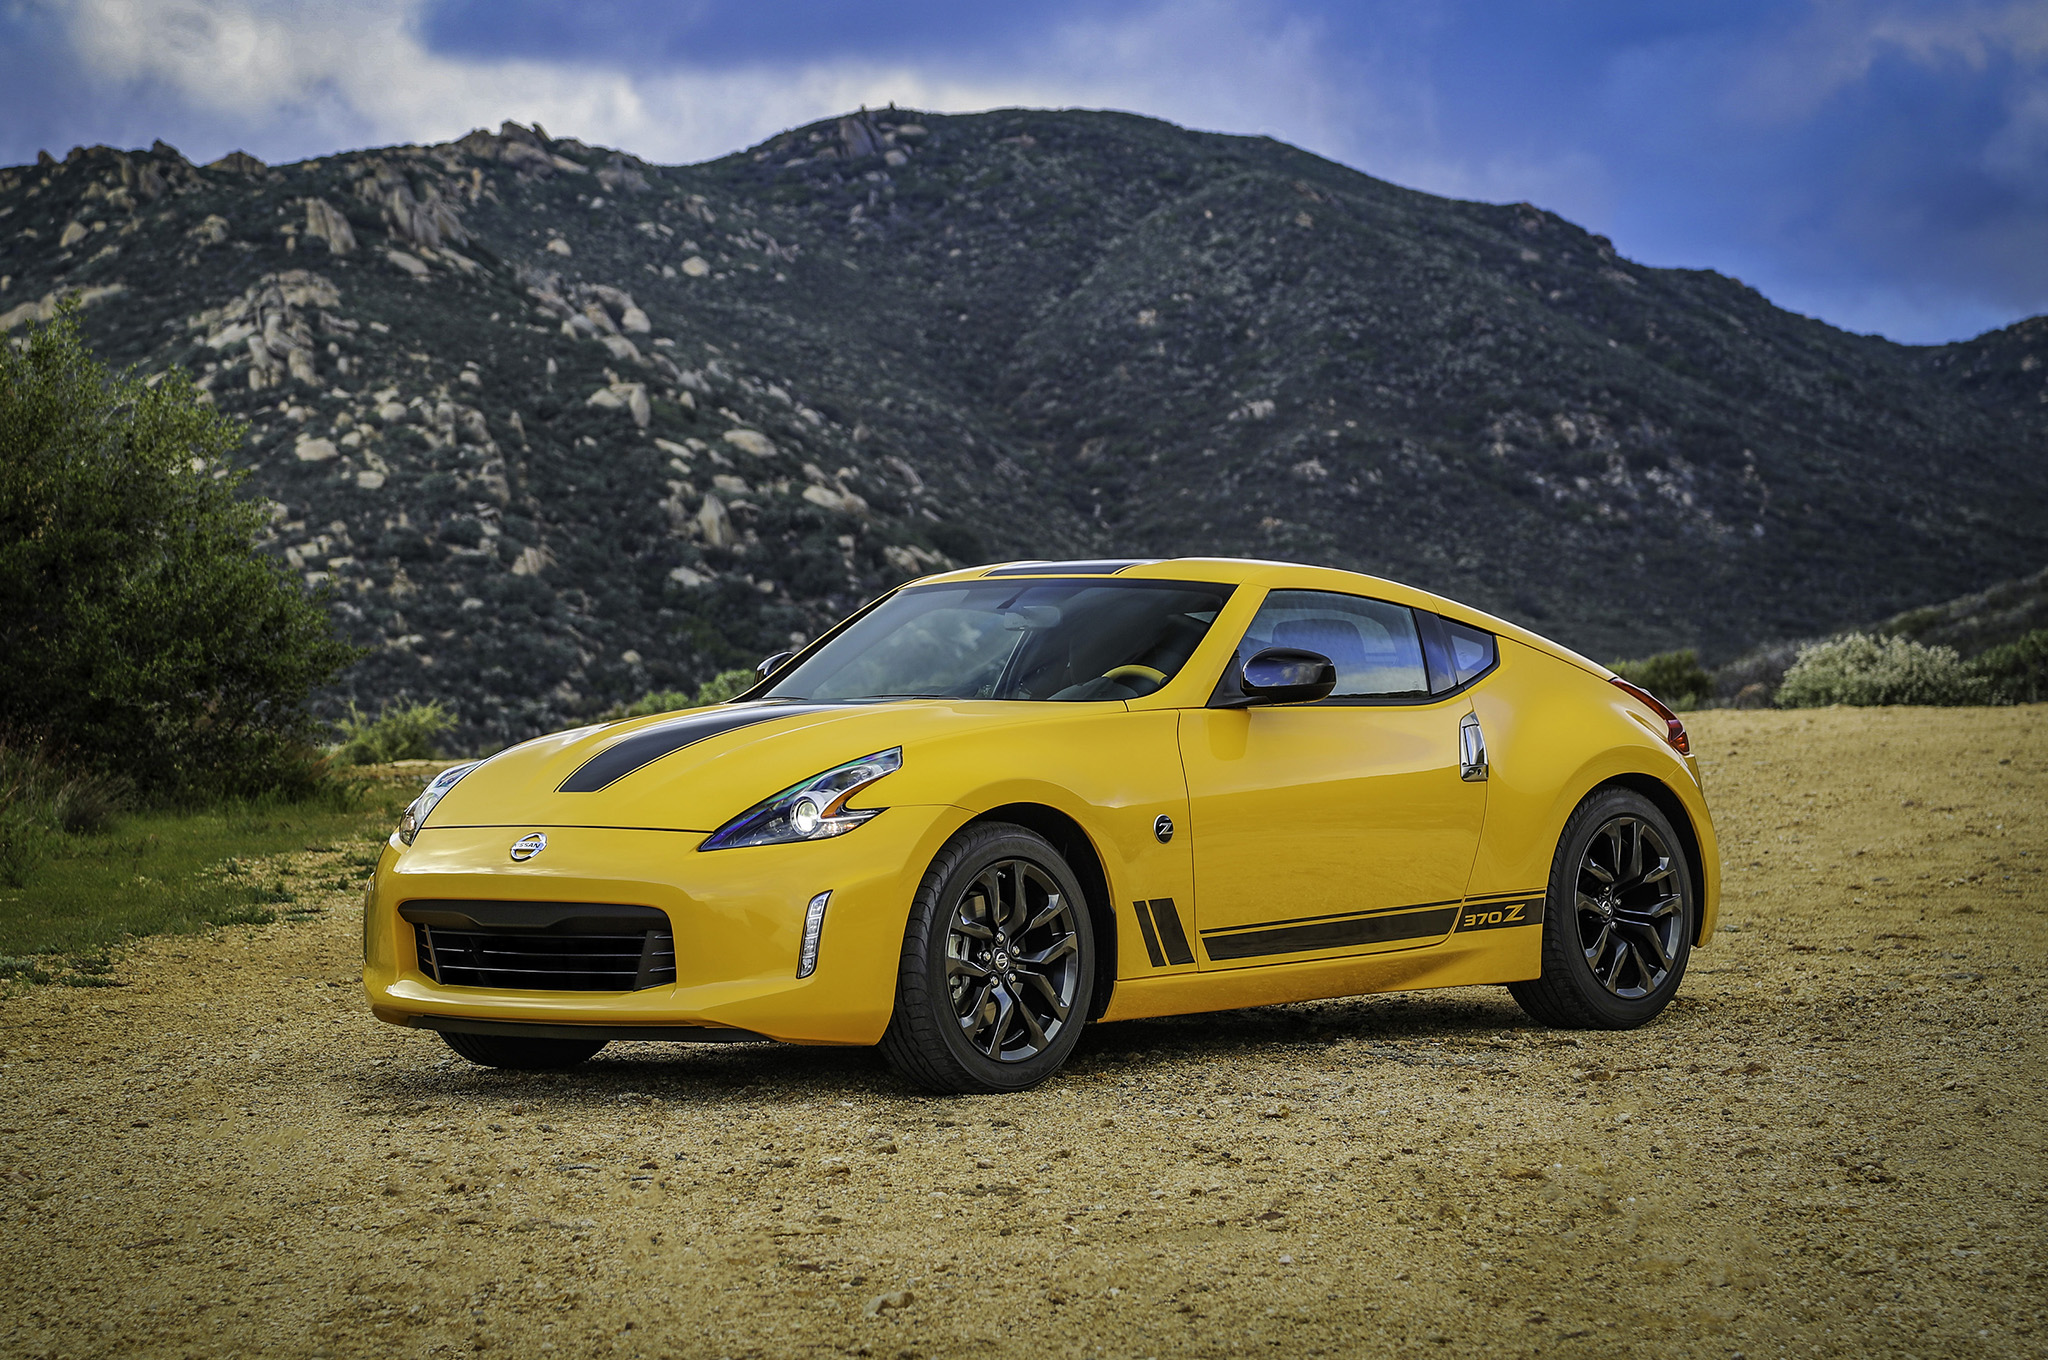 2018 nissan z370. beautiful nissan 2018 nissan 370z auto enthusiasts 2018 in nissan z370